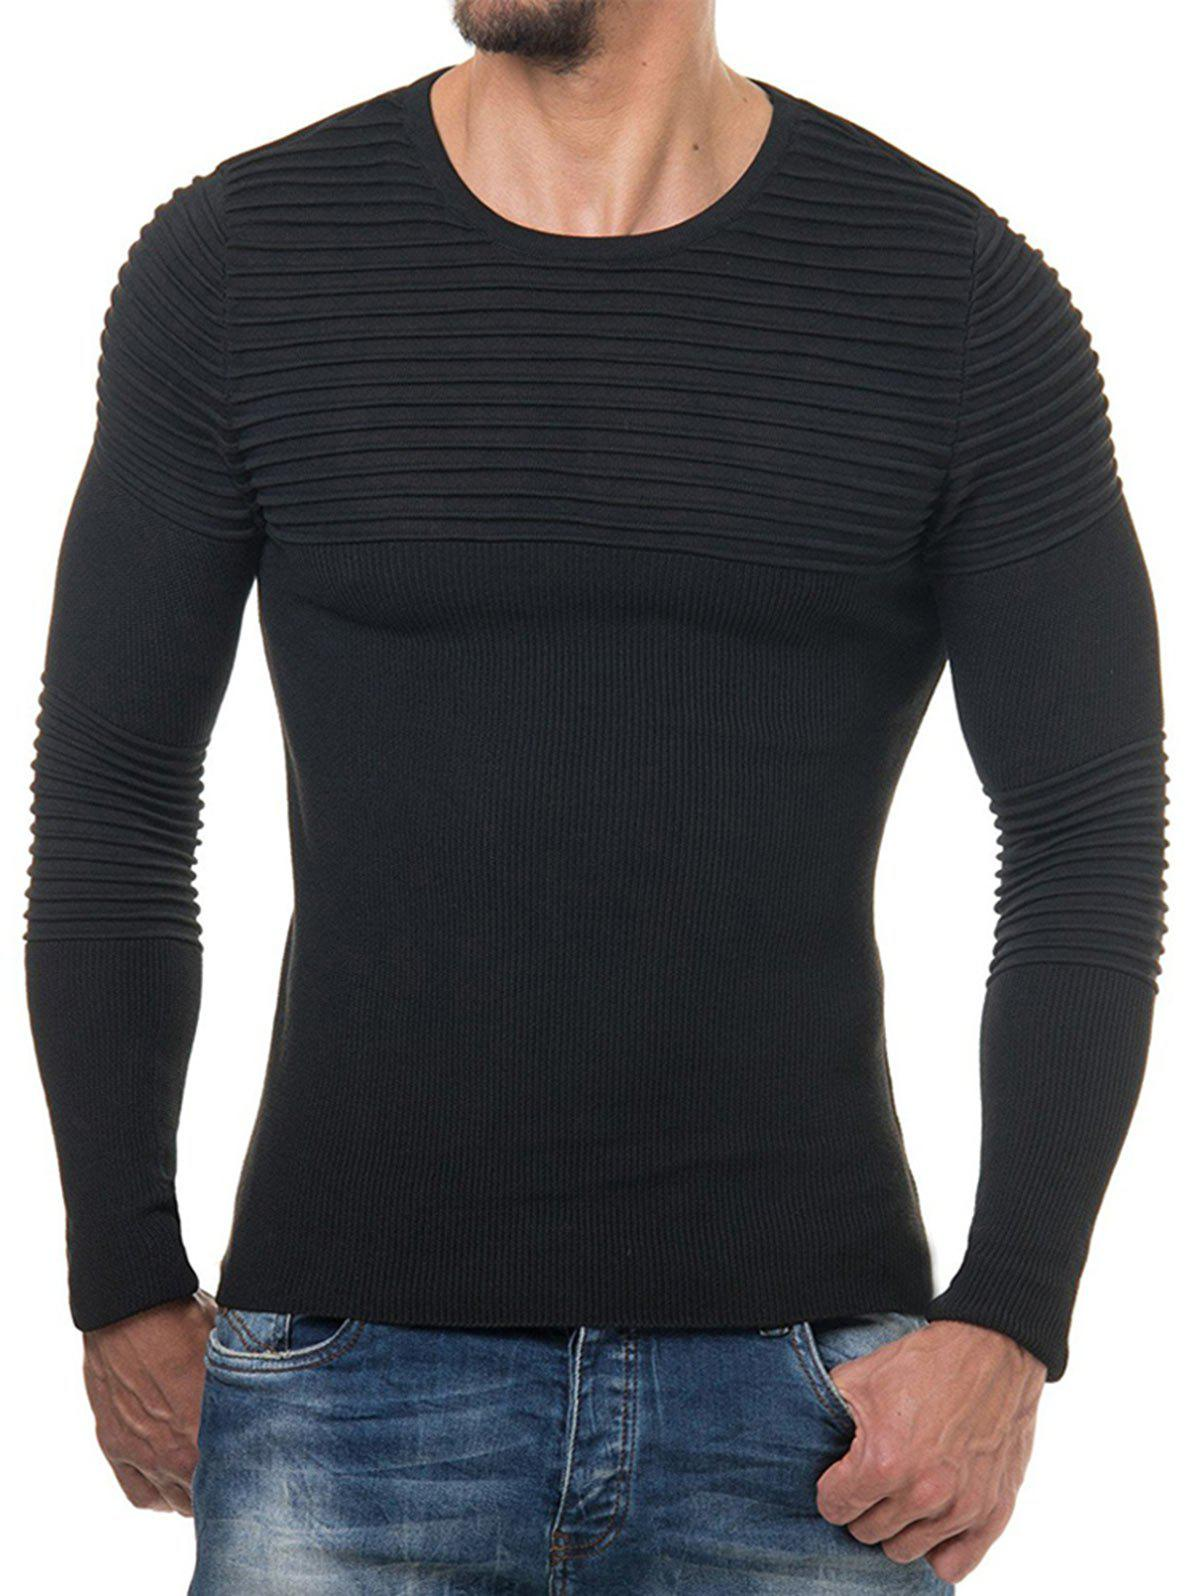 Pleated Solid Color Long Sleeve Sweater - BLACK L